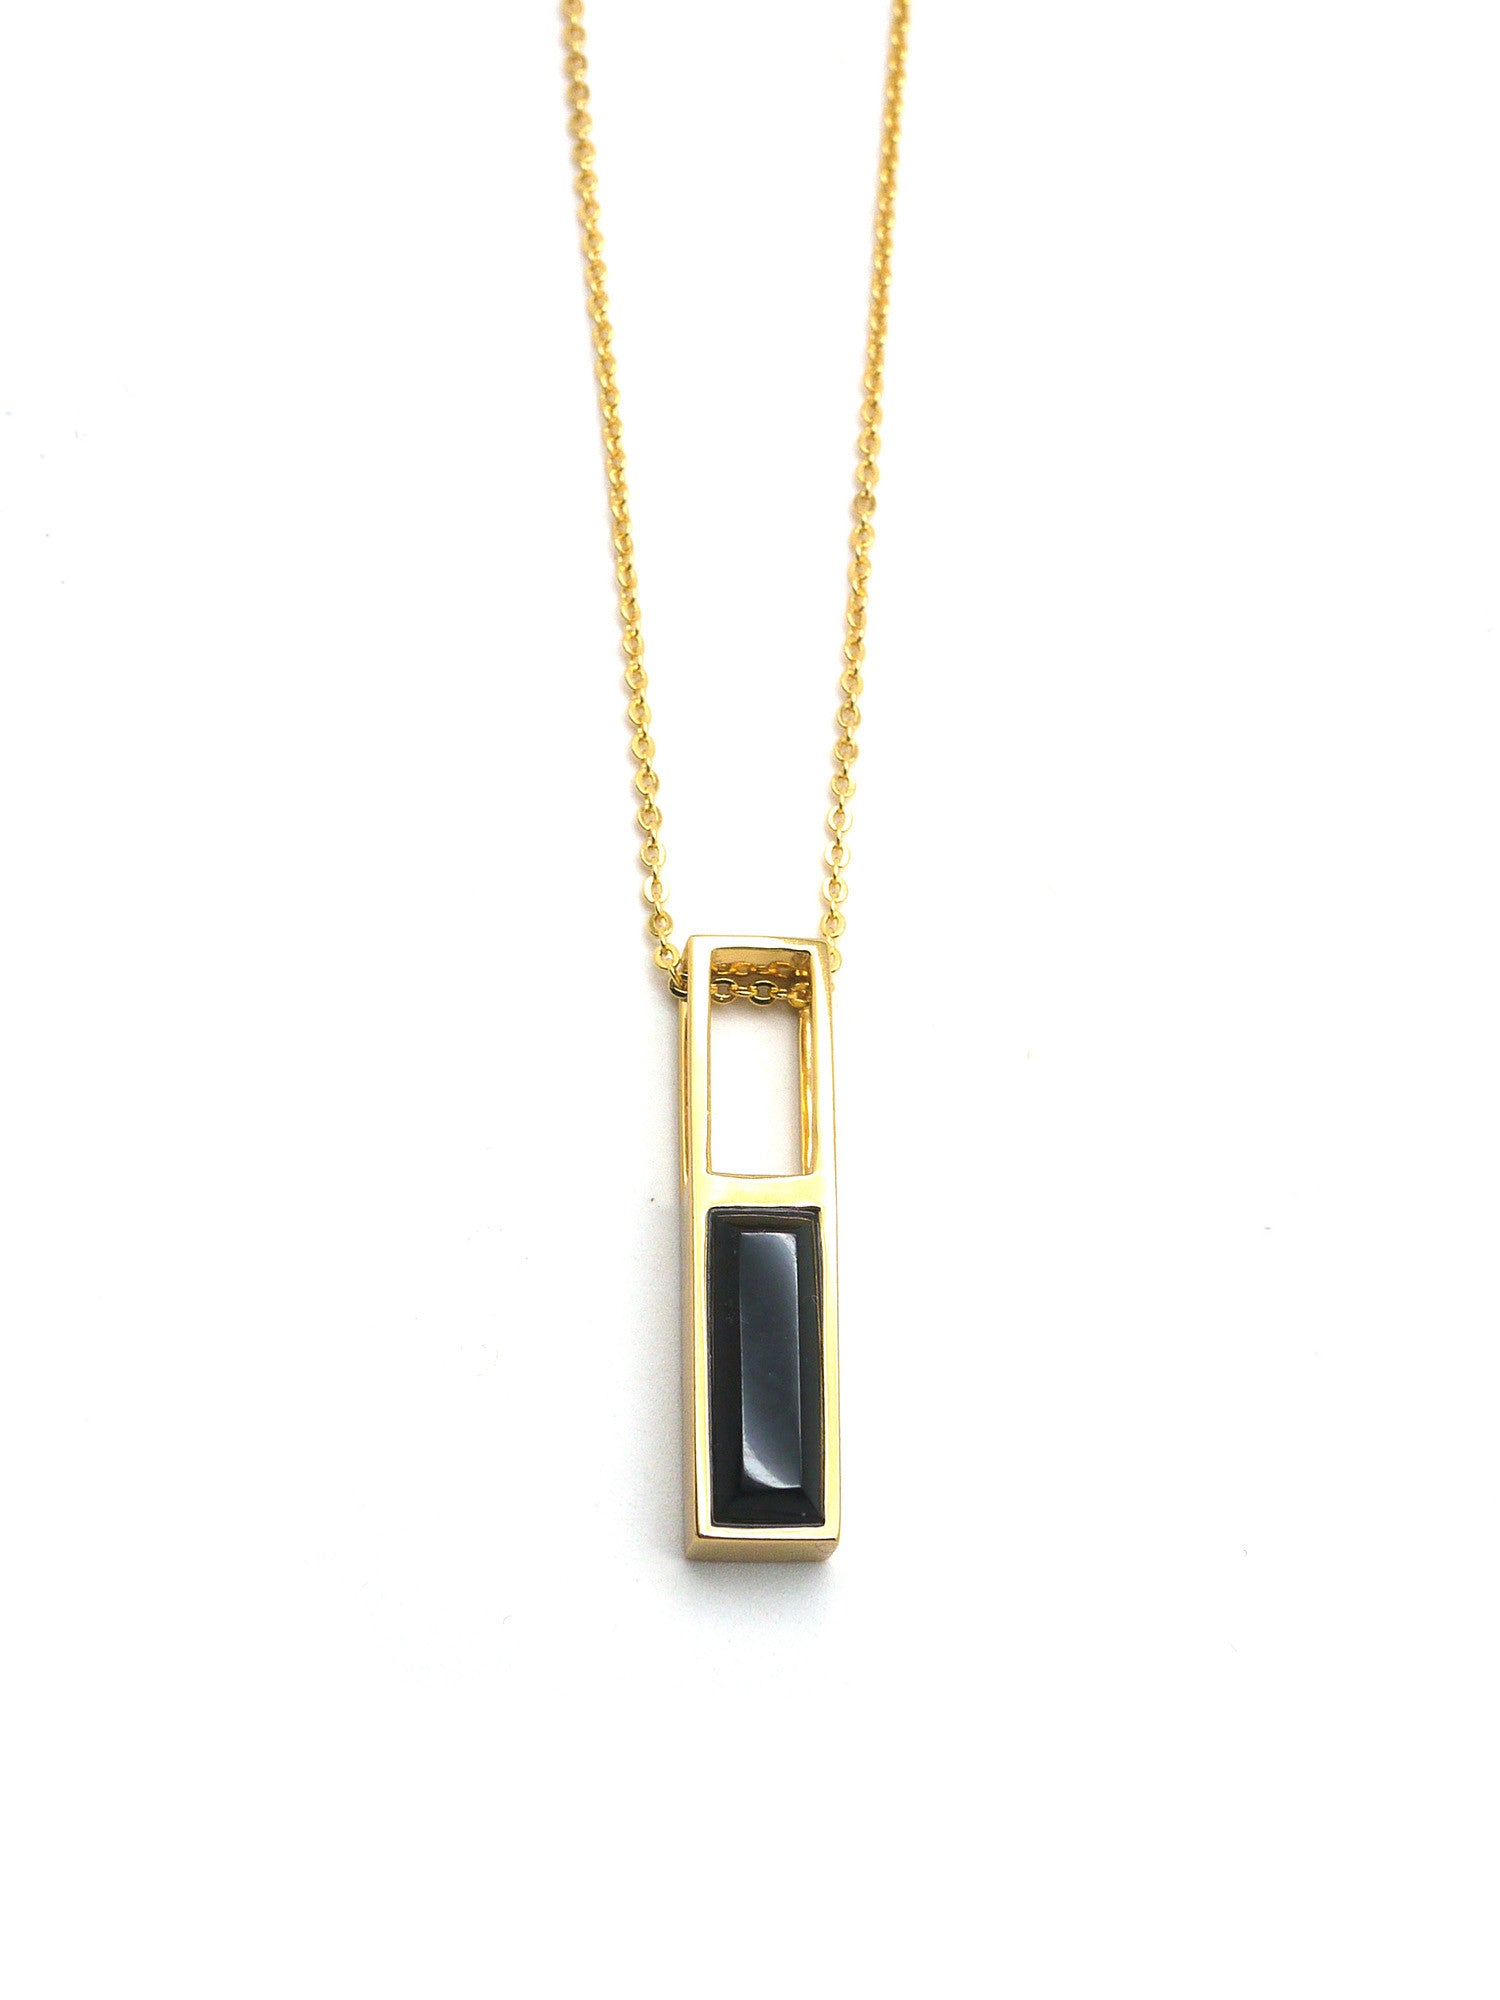 Linear Hollow Necklace - Gold - Onyx